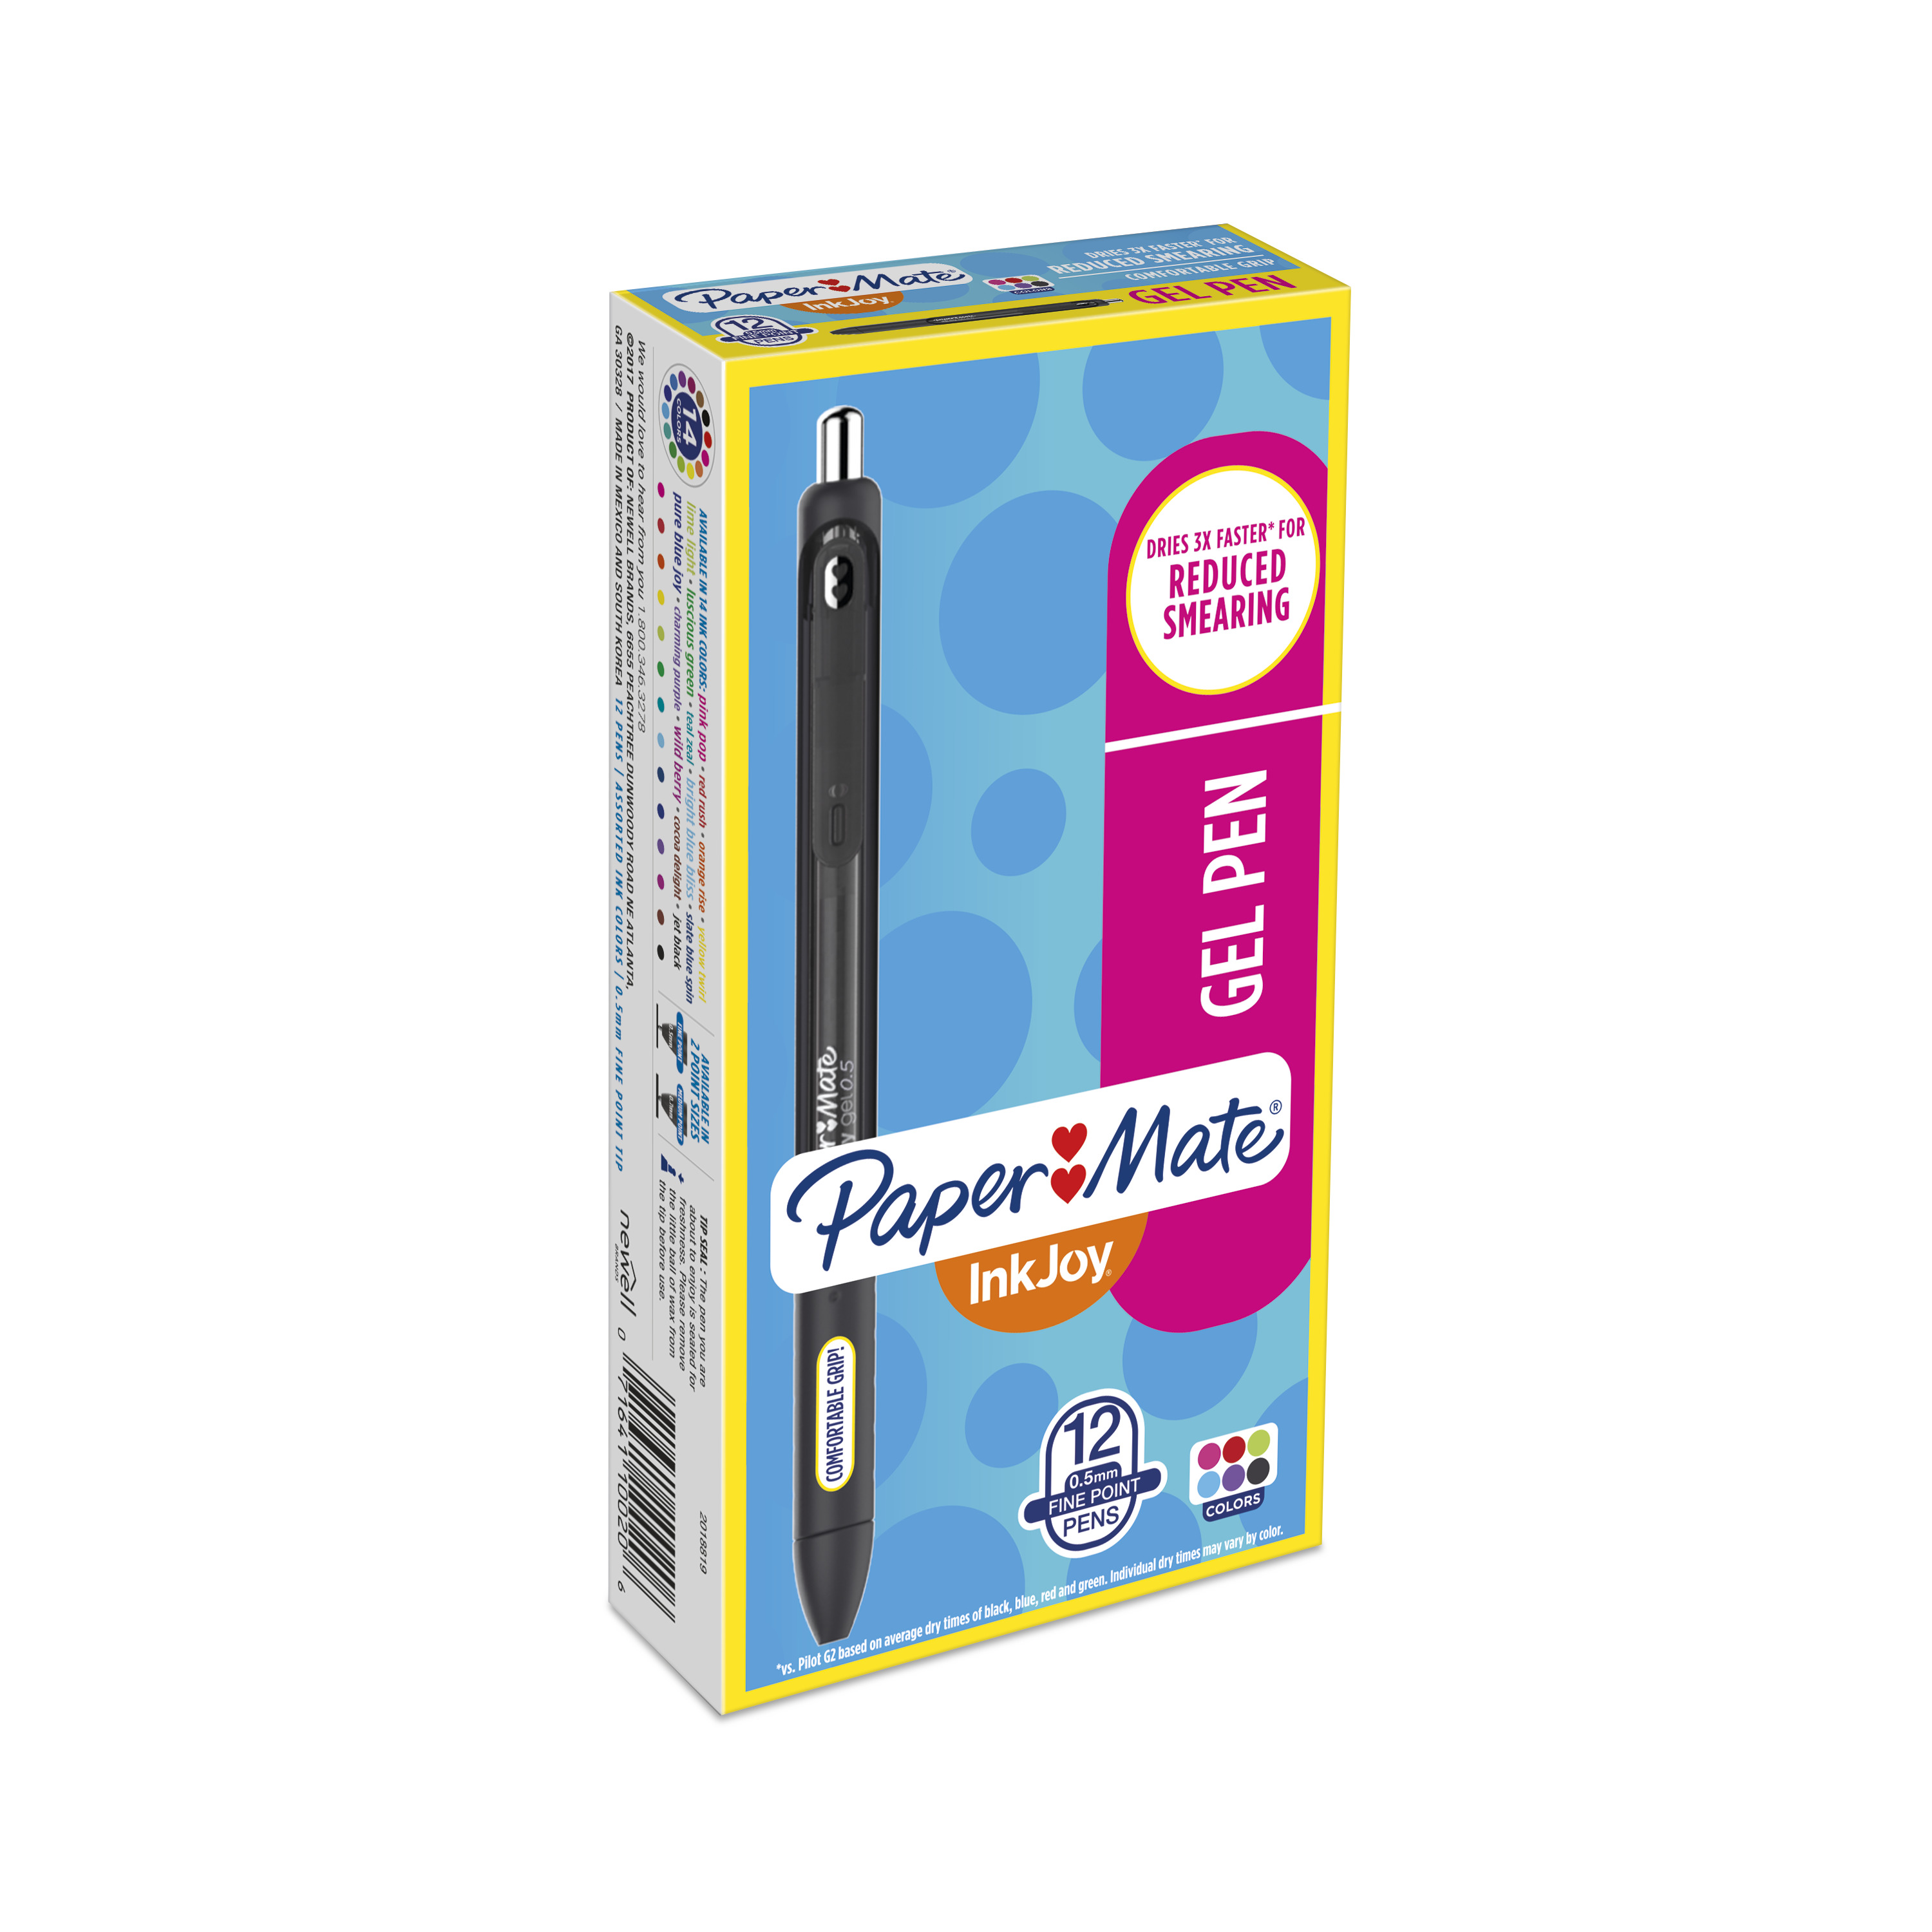 Paper Mate InkJoy Gel Pen, Fine Point, Assorted Colors, Box of 12